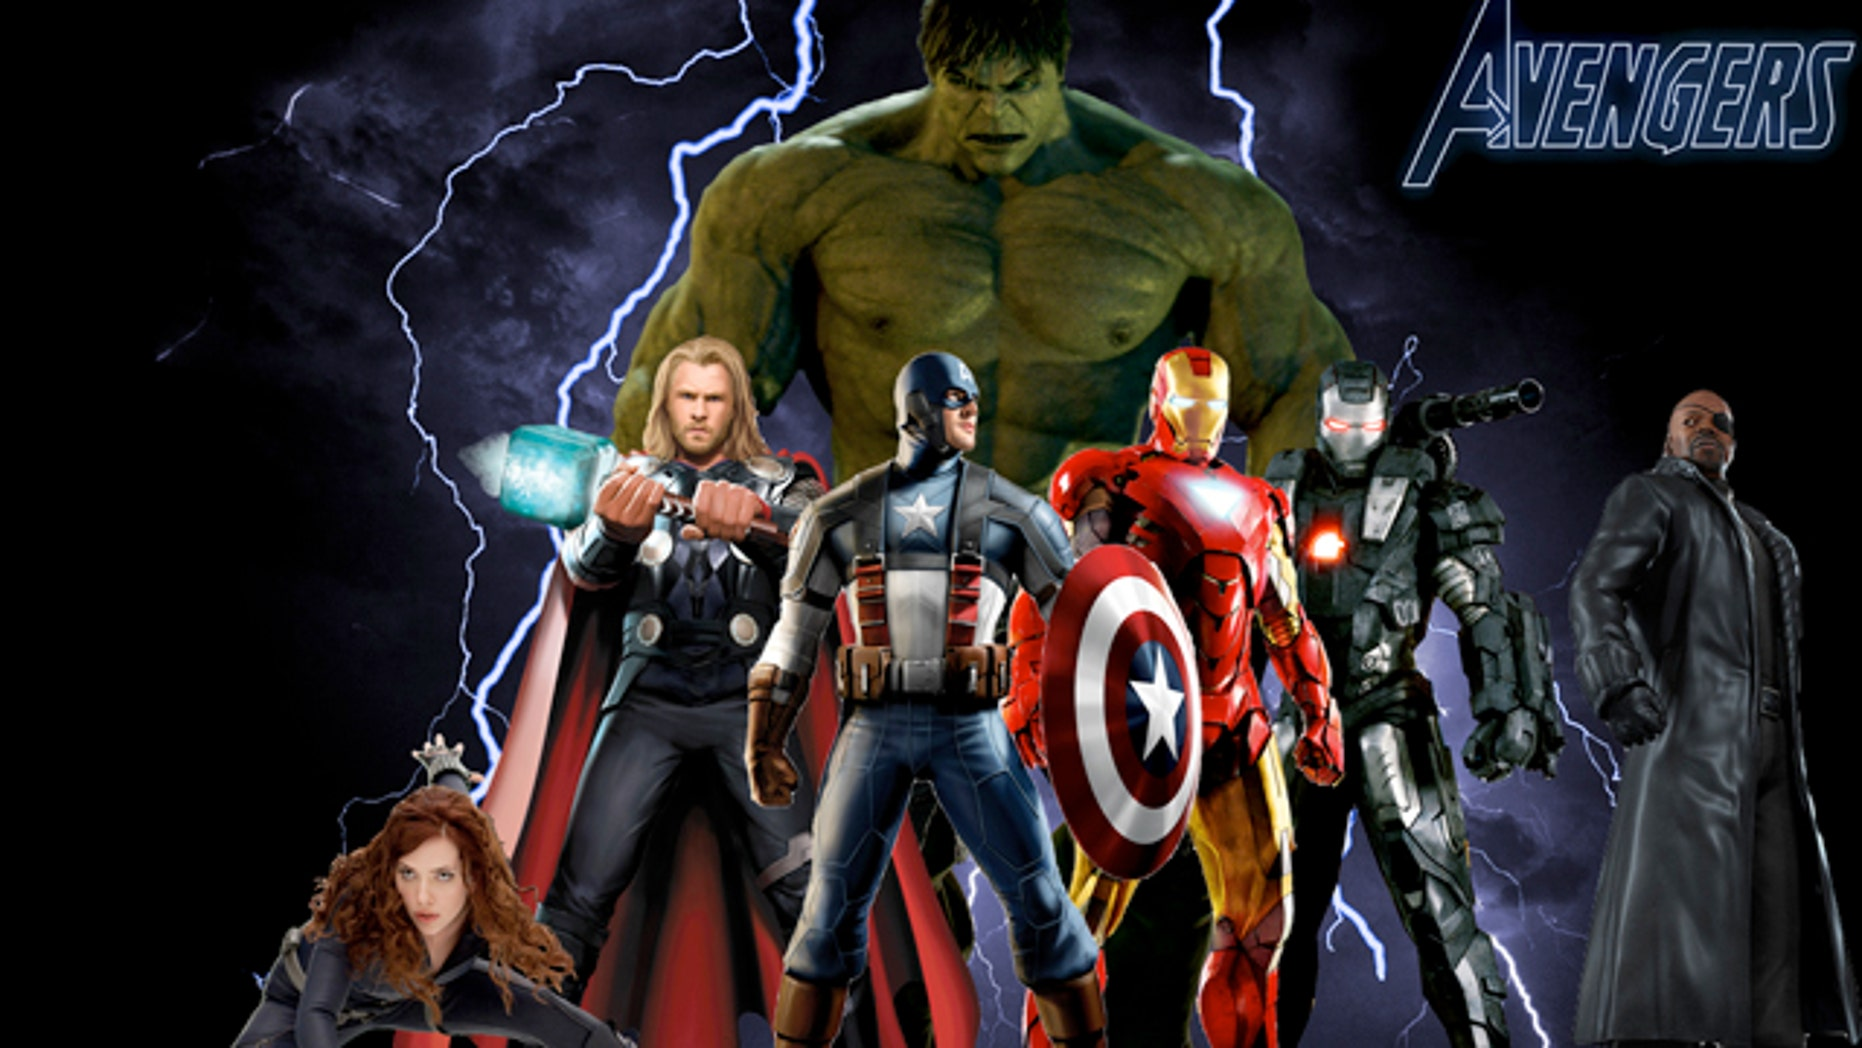 """A poster advertising the forthcoming film """"The Avengers,"""" which tells the story of """"a group of remarkable people"""" gathered to help save the planet. But are those """"people"""" human?"""